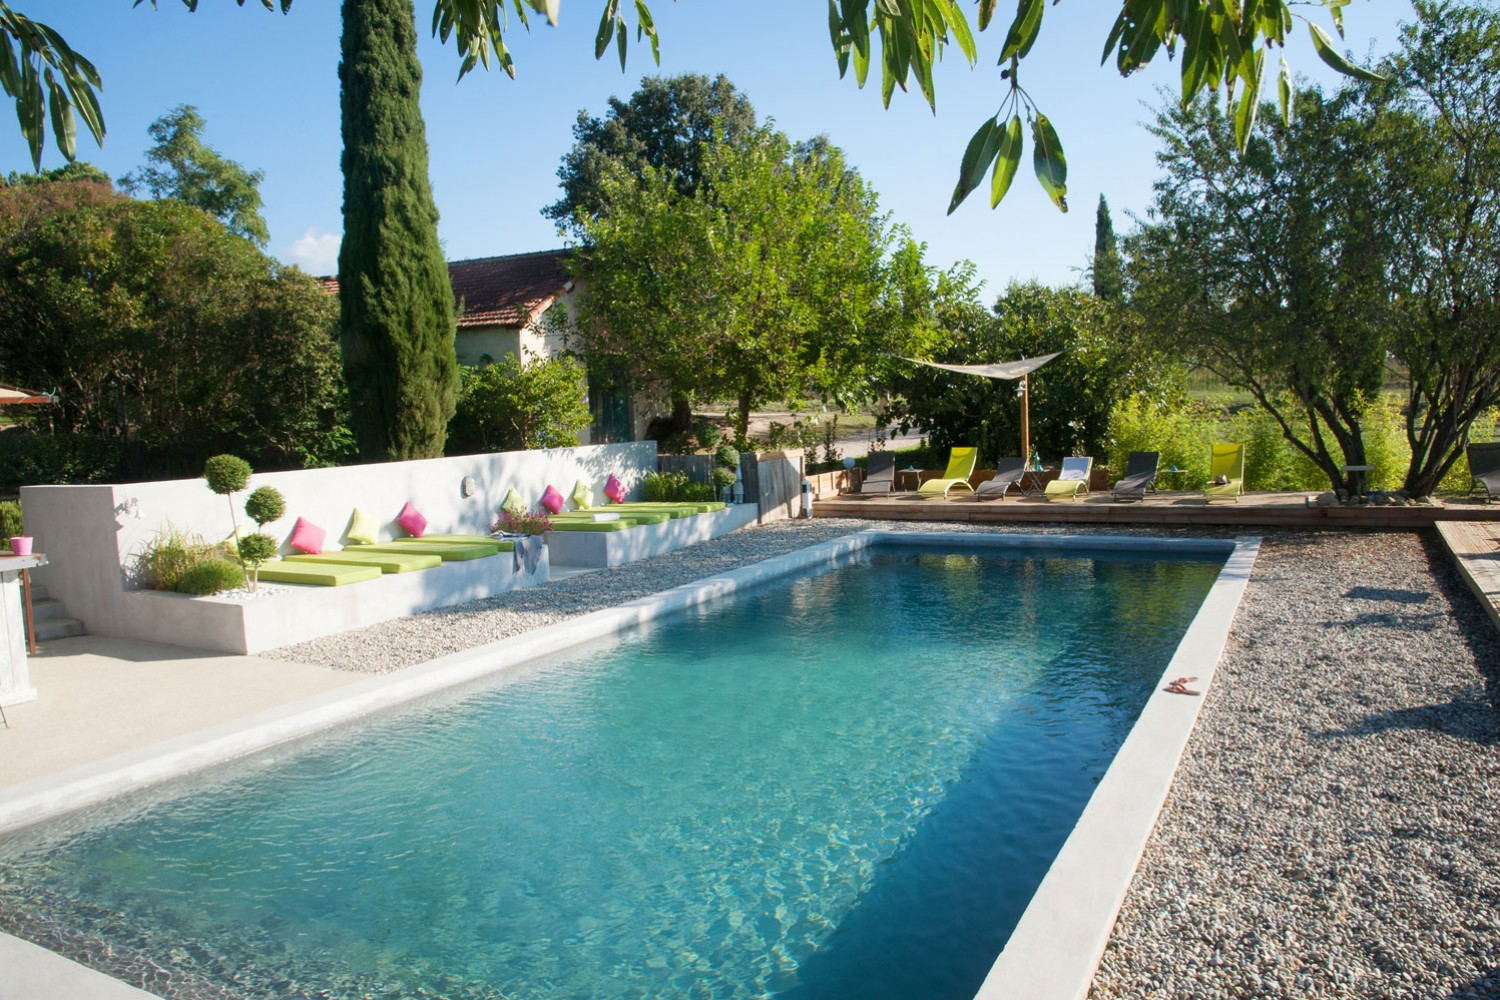 Maison d hote luberon avie home for Chambre d hotes luberon